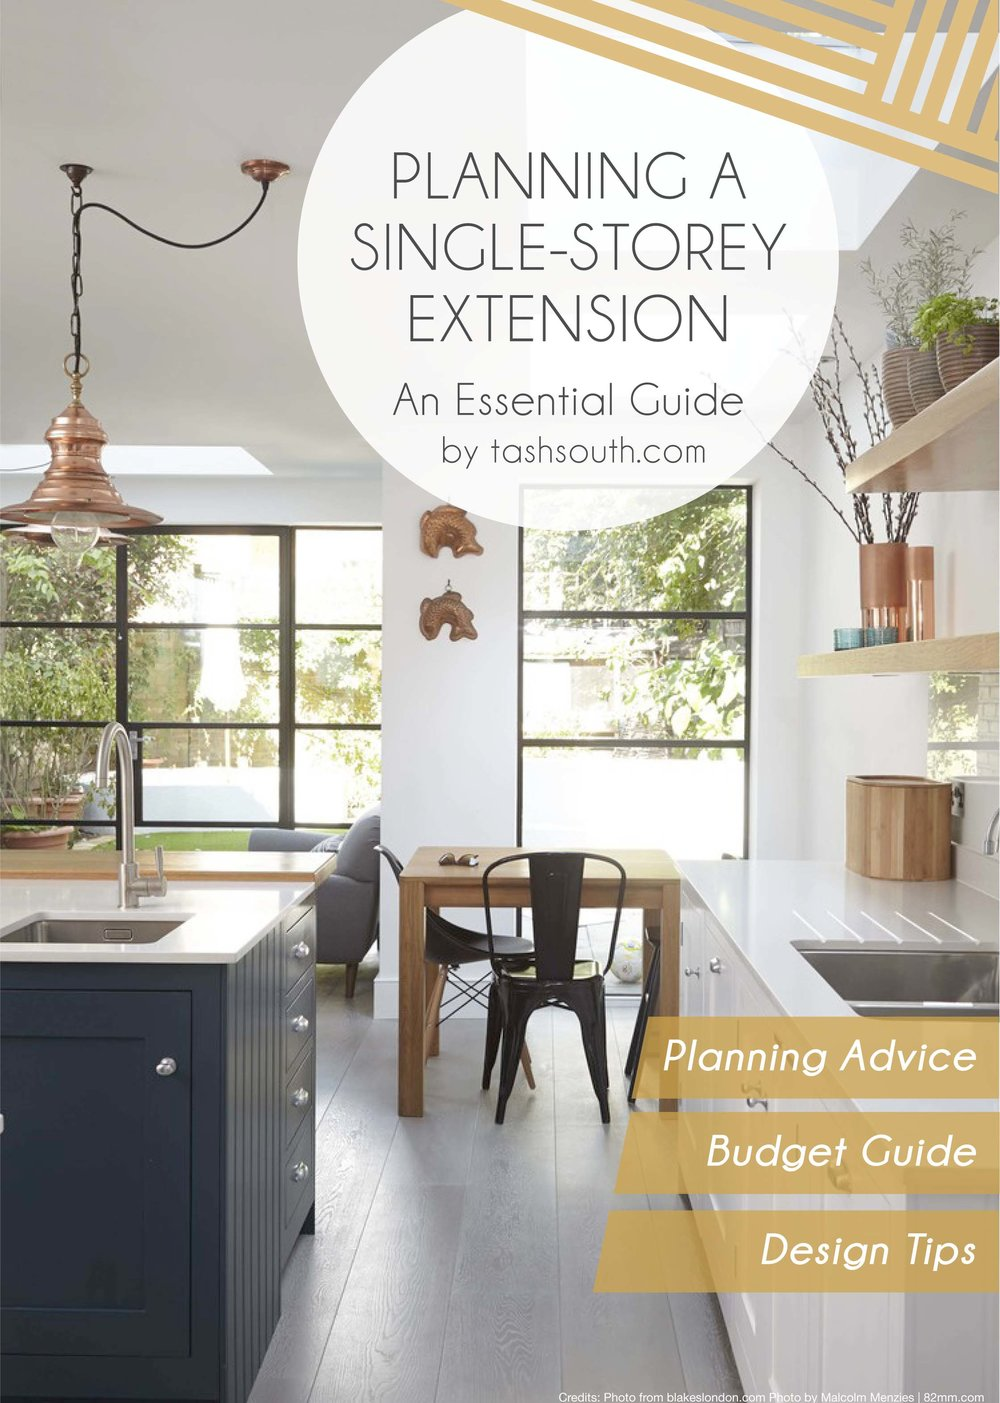 Essential Guide to planning a single storey extension